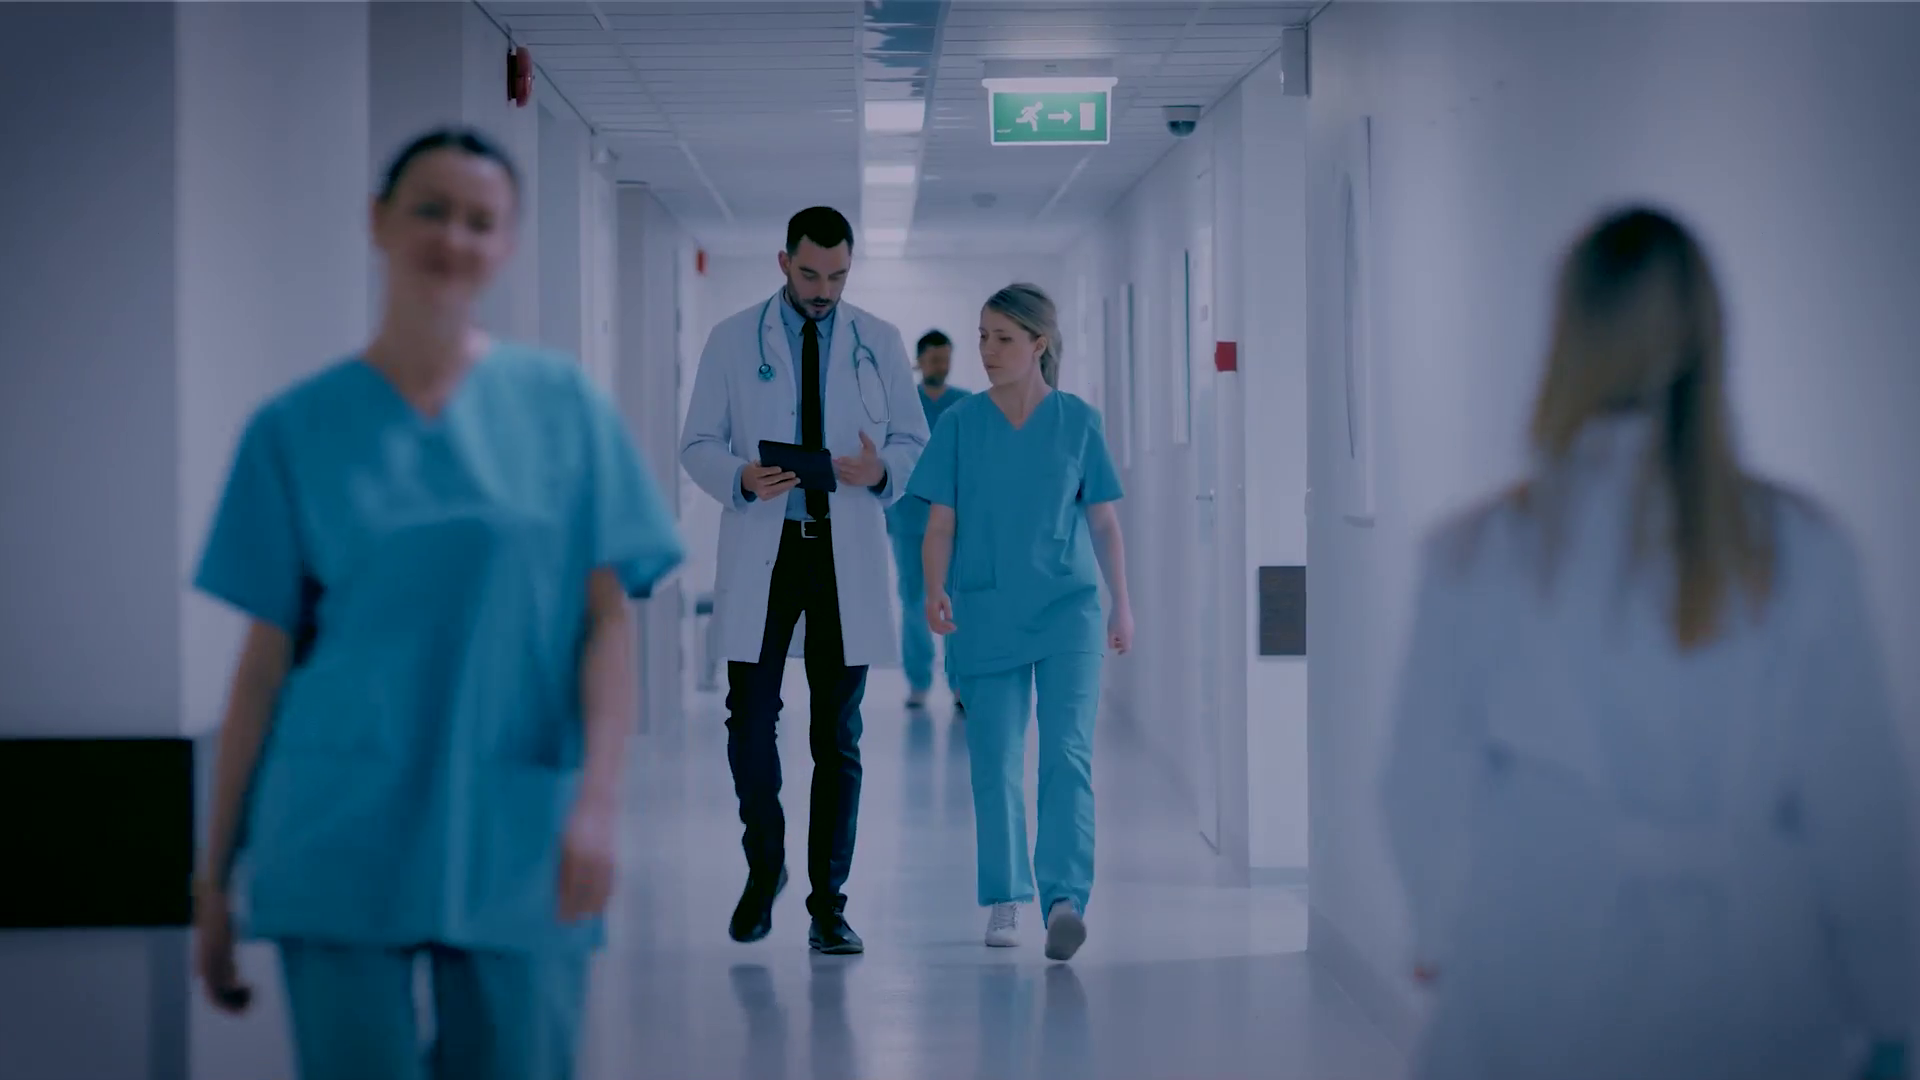 A doctor and a nurse walking through a hospital corridor